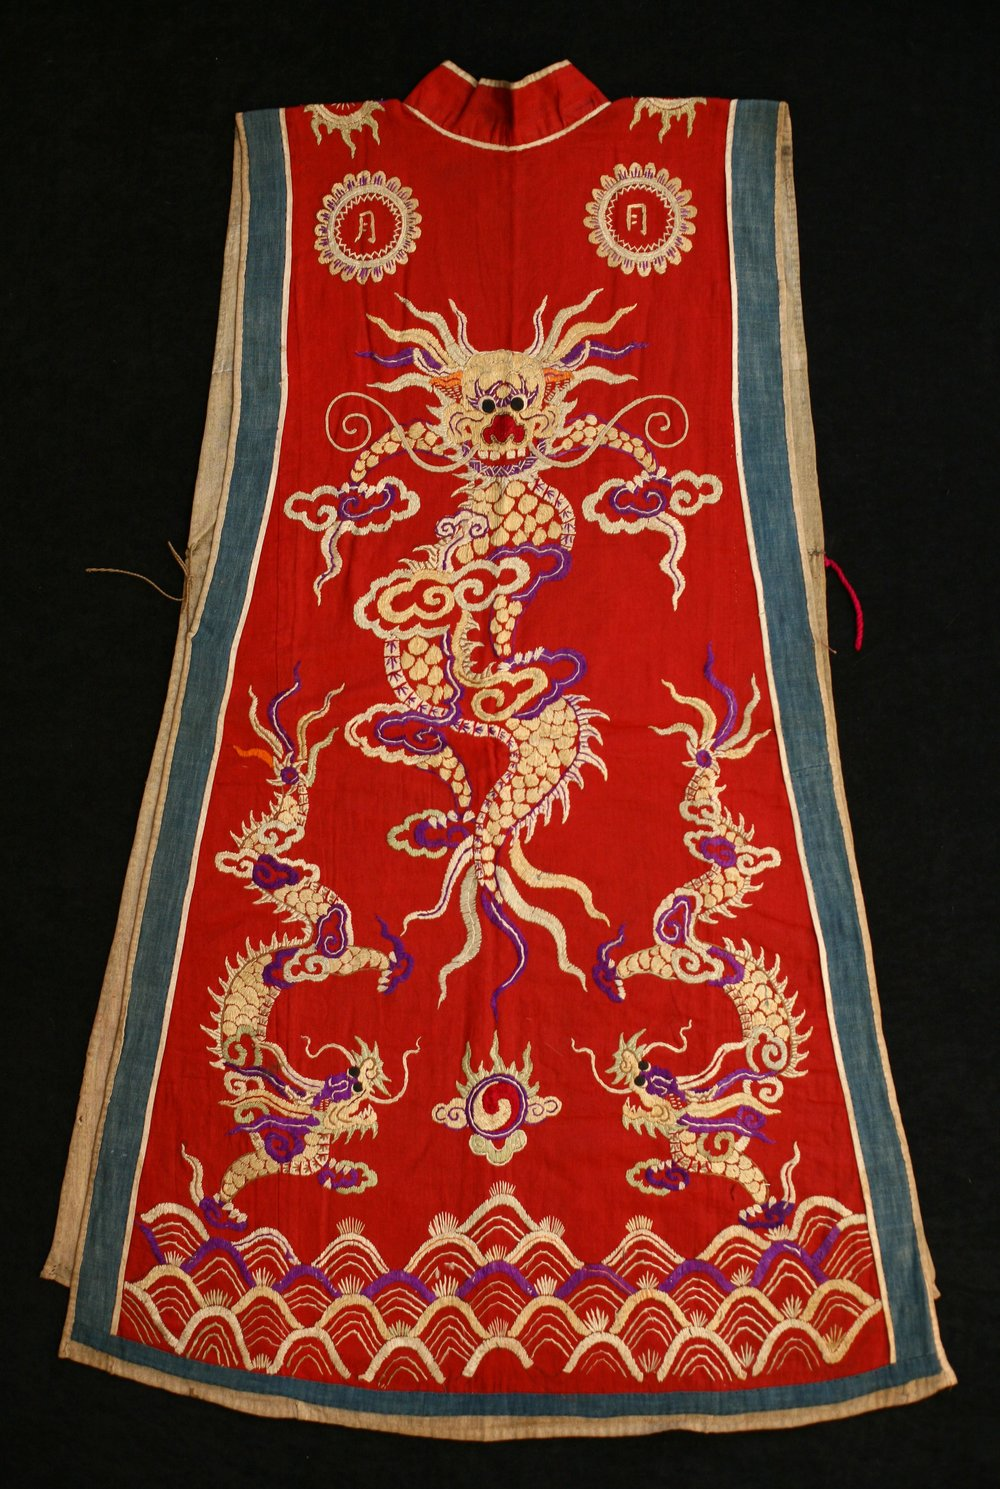 Dao Quan Chet priest's vestment, Vietnam, early to mid 20th century.